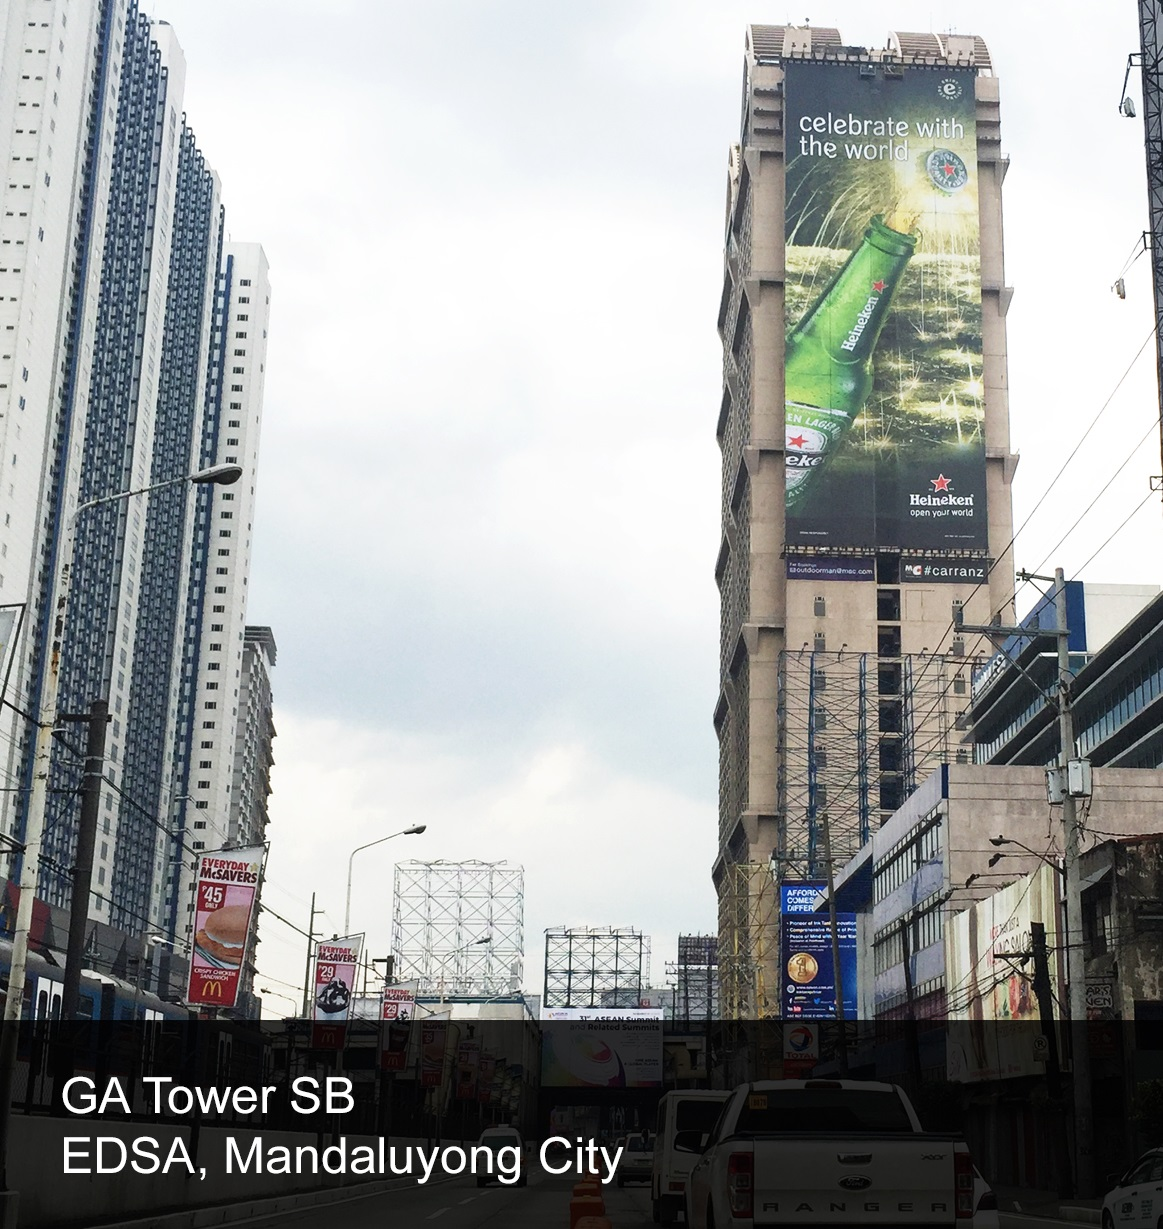 Dooh-ph-ga-tower-billboard-southbound-edsa-mandaluyong-city-billboard.jpg